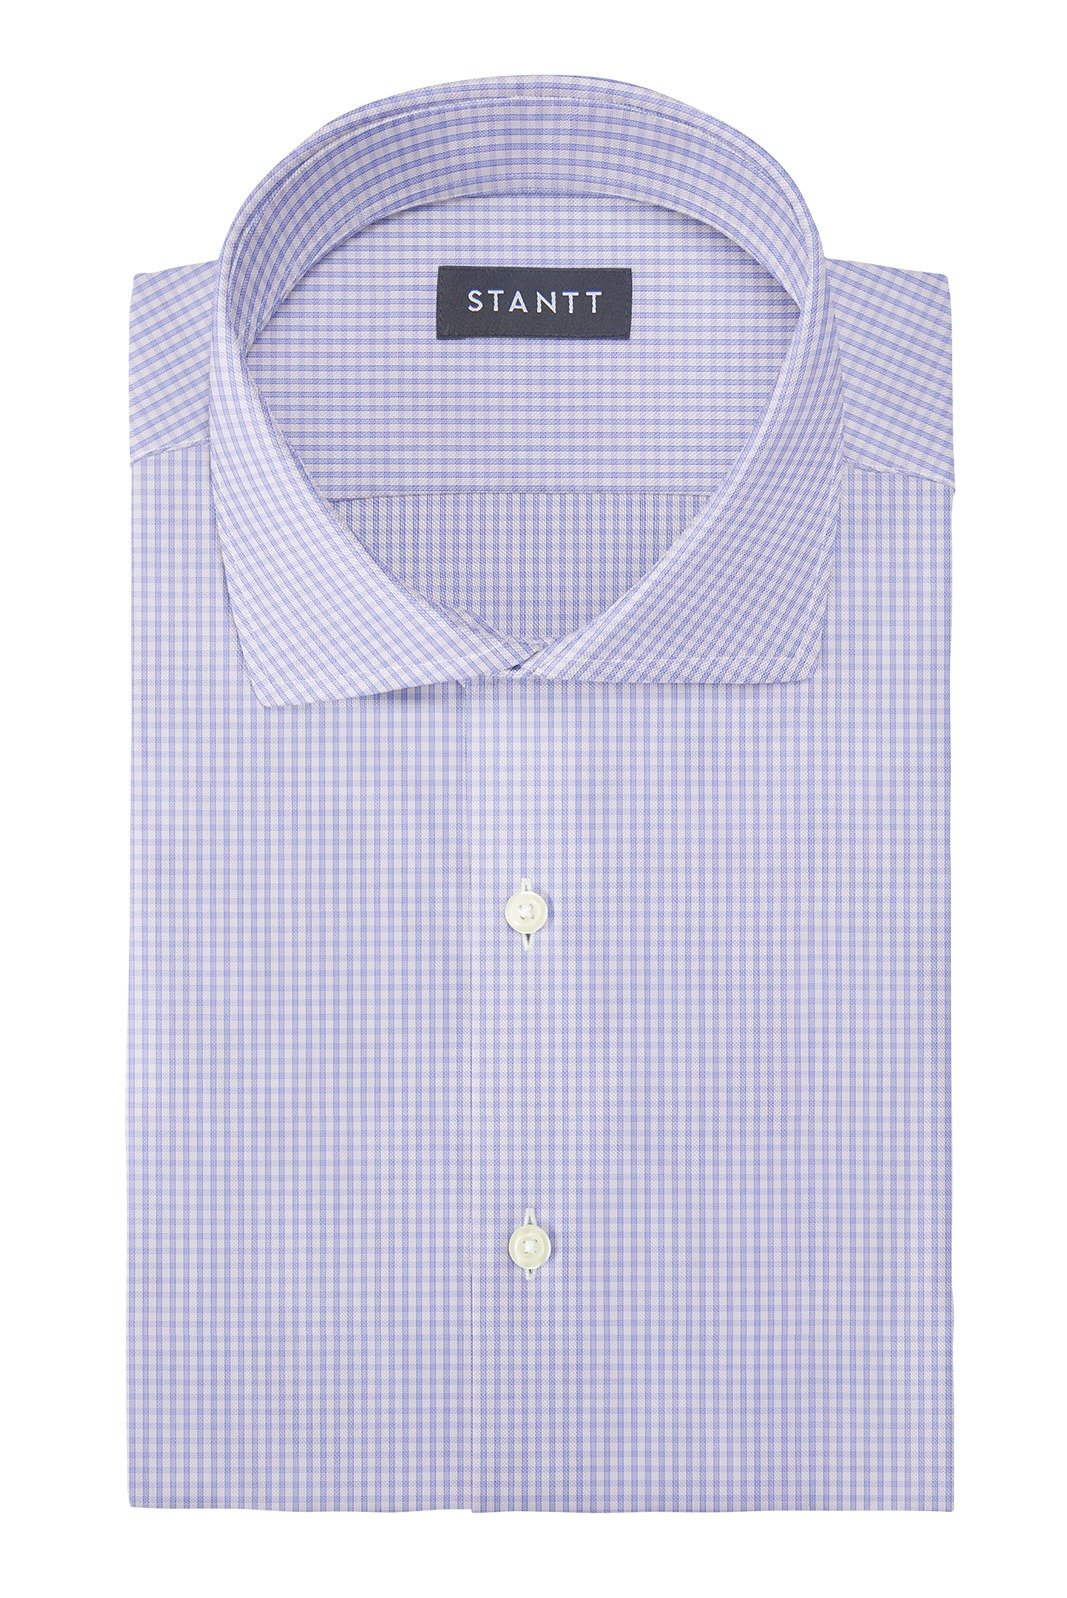 Wrinkle-Resistant Sky Blue Grid Check: Cutaway Collar, French Cuff